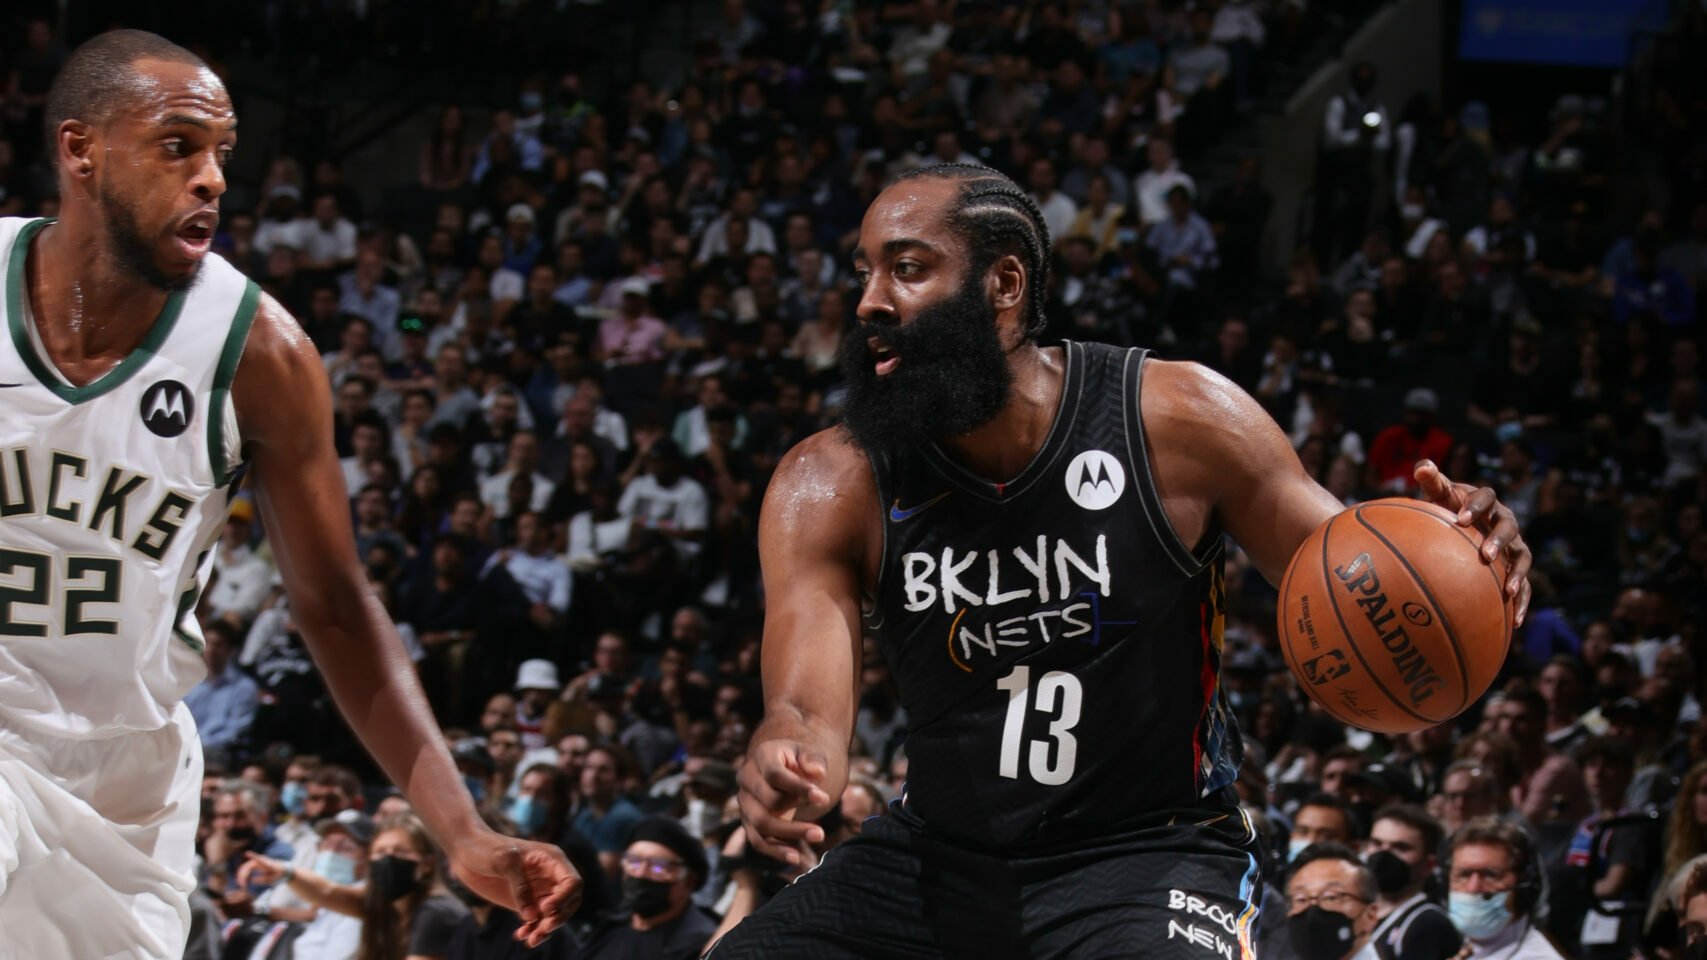 Nets battle back to set up tight finish to Game 5